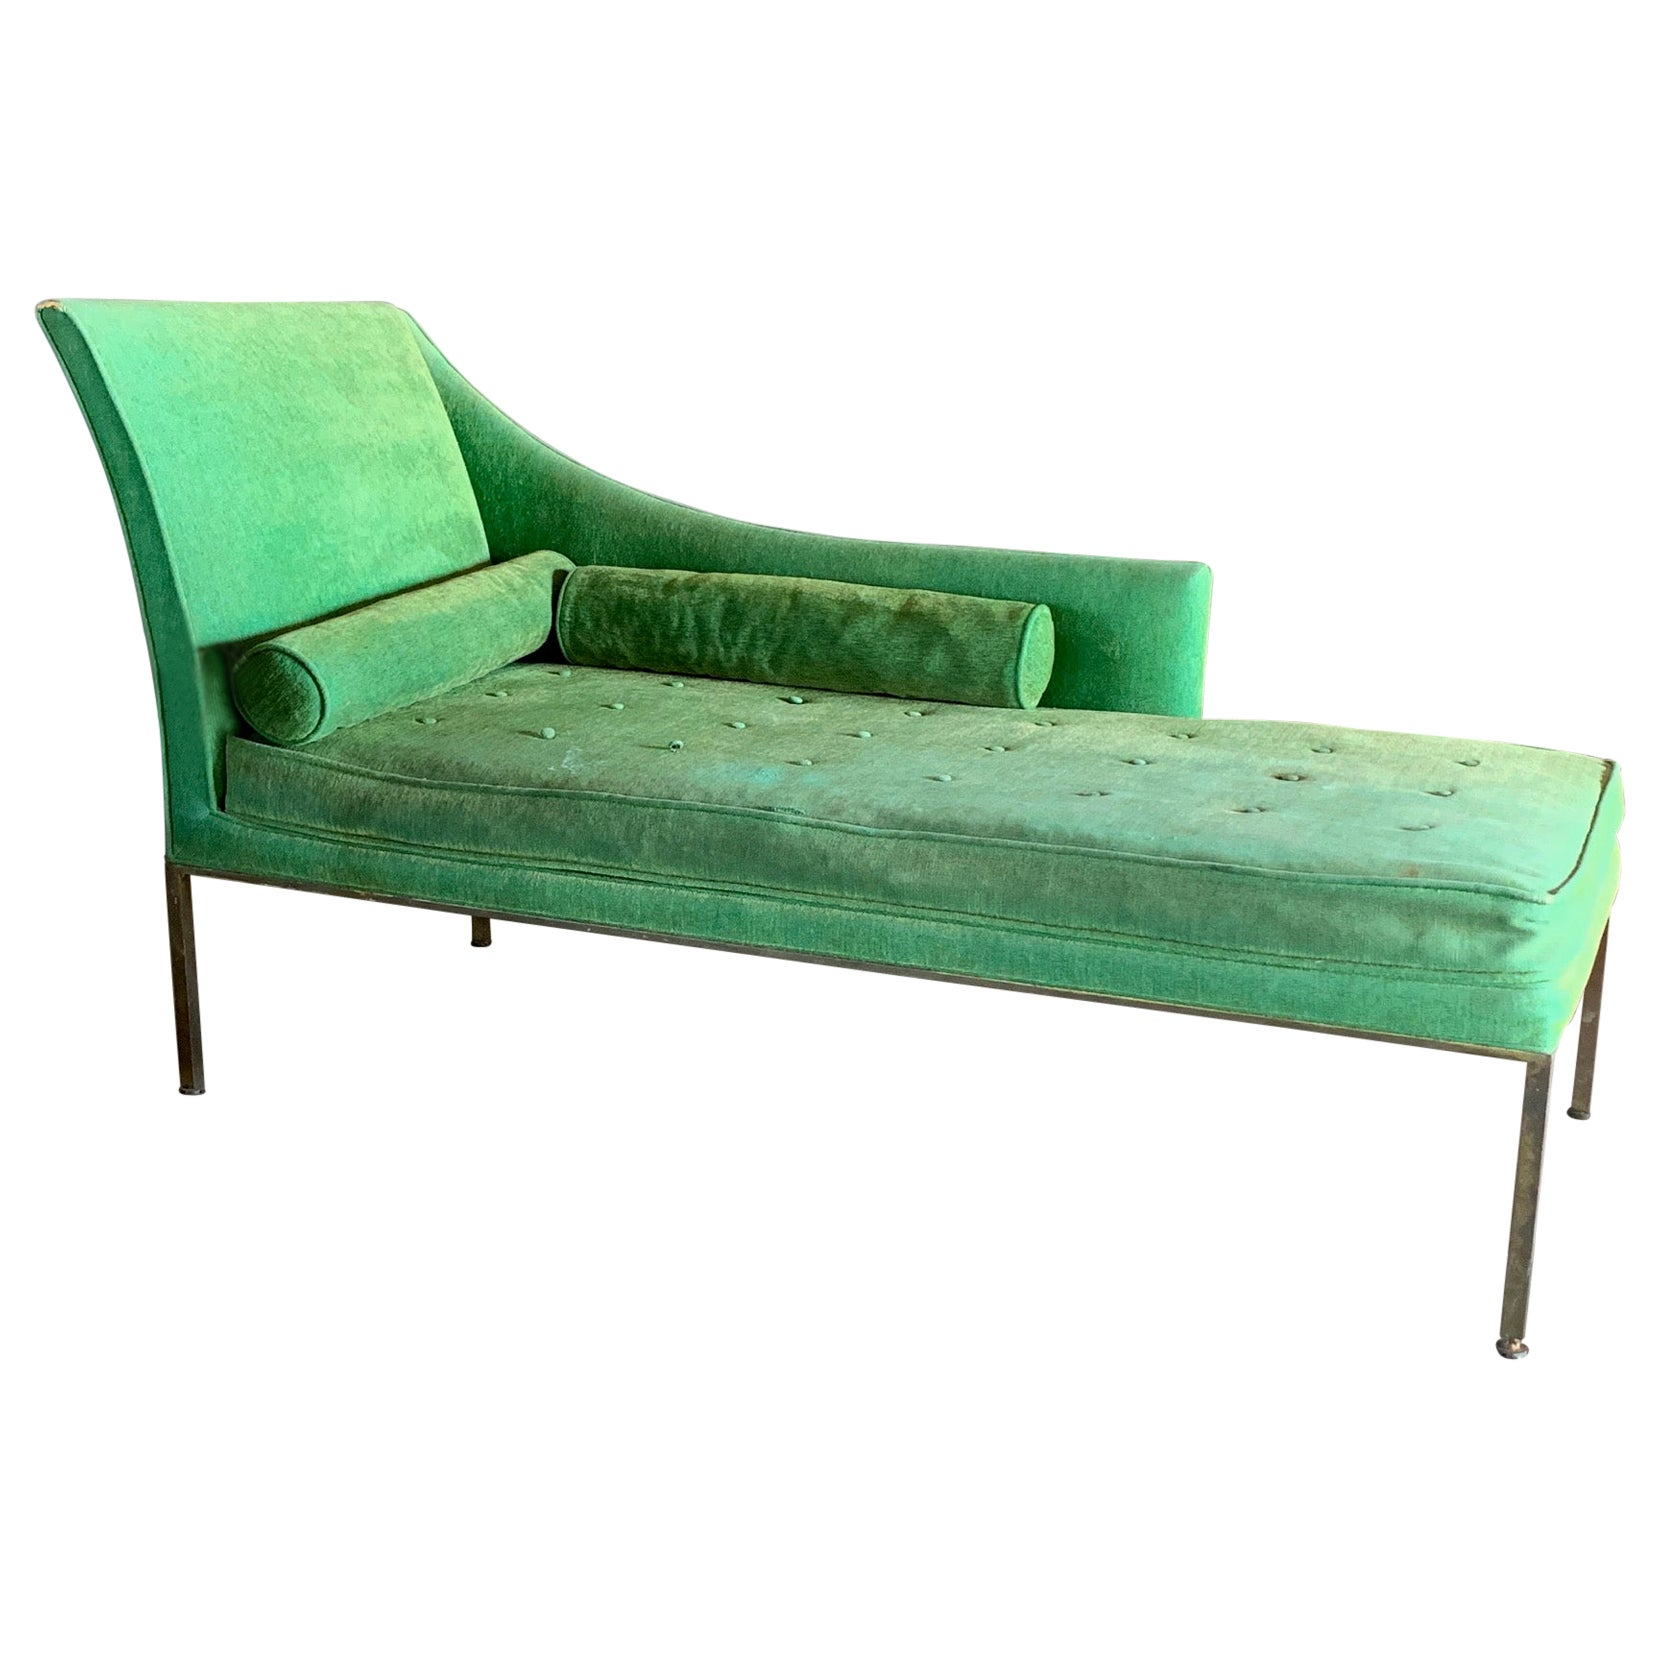 An Elegant Harvey Probber Chaise with Brass Frame